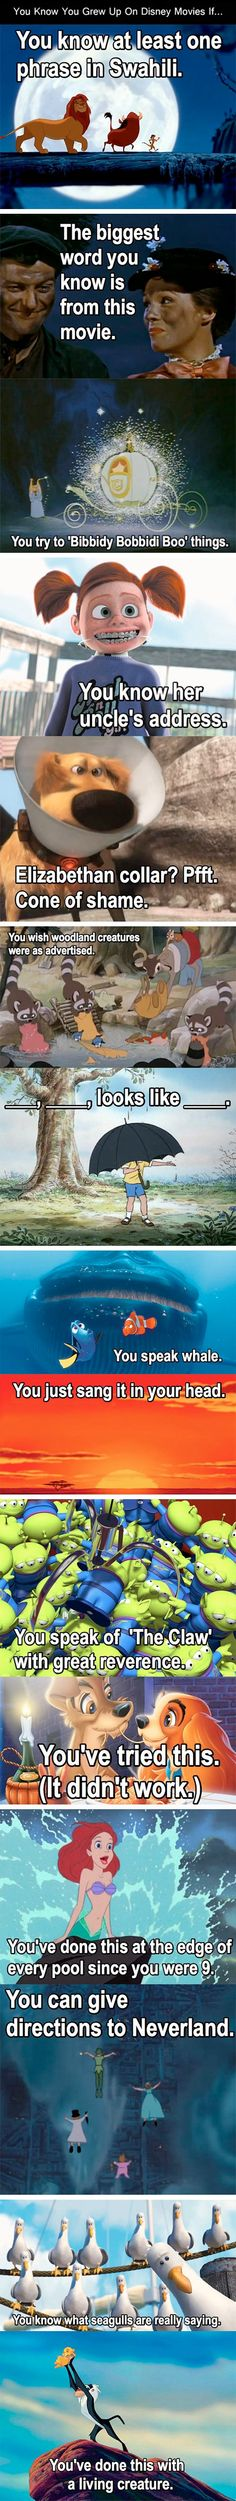 From tumblr and this: http://justfunnypics.net/post/54337659048/you-know-you-grew-up-on-disney-movies-if#.UiViV7xp37c